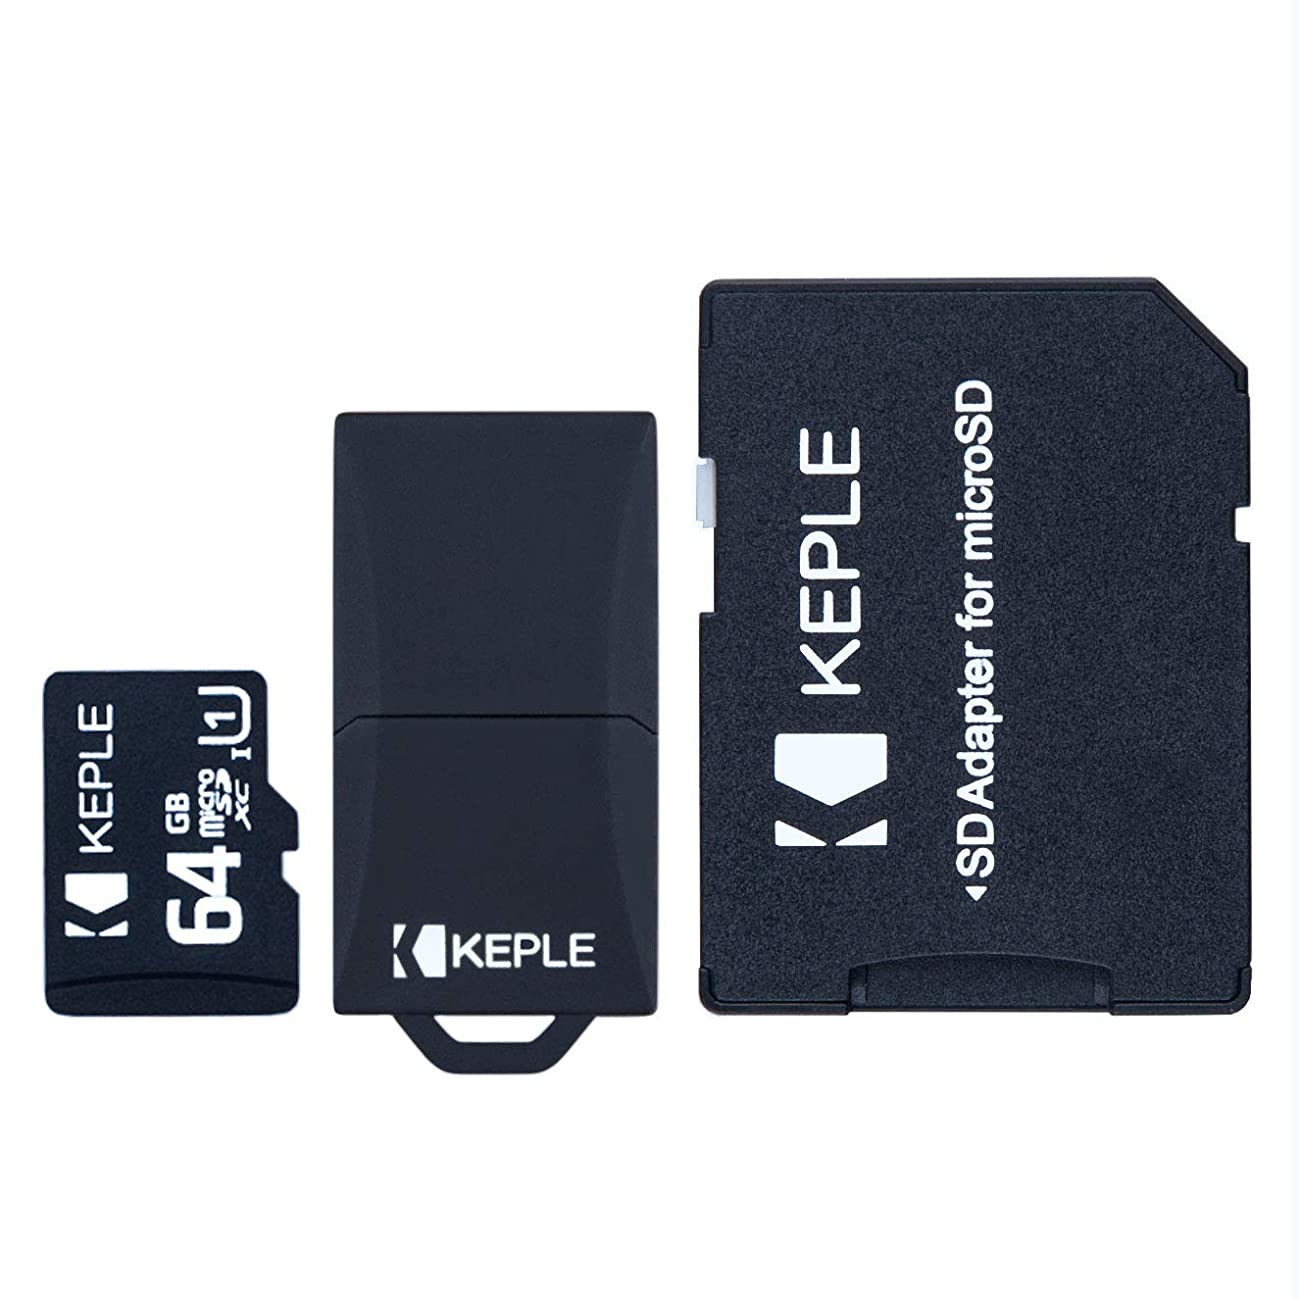 64GB microSD Memory Card | Micro SD Class 10 Compatible with Go Pro Gopro Hero 3, 4, 5, Session | Drift Stealth 2, Contour Roam 3, Veho Muvi K2 NPNG Action Camera Cam Phone | 64 GB